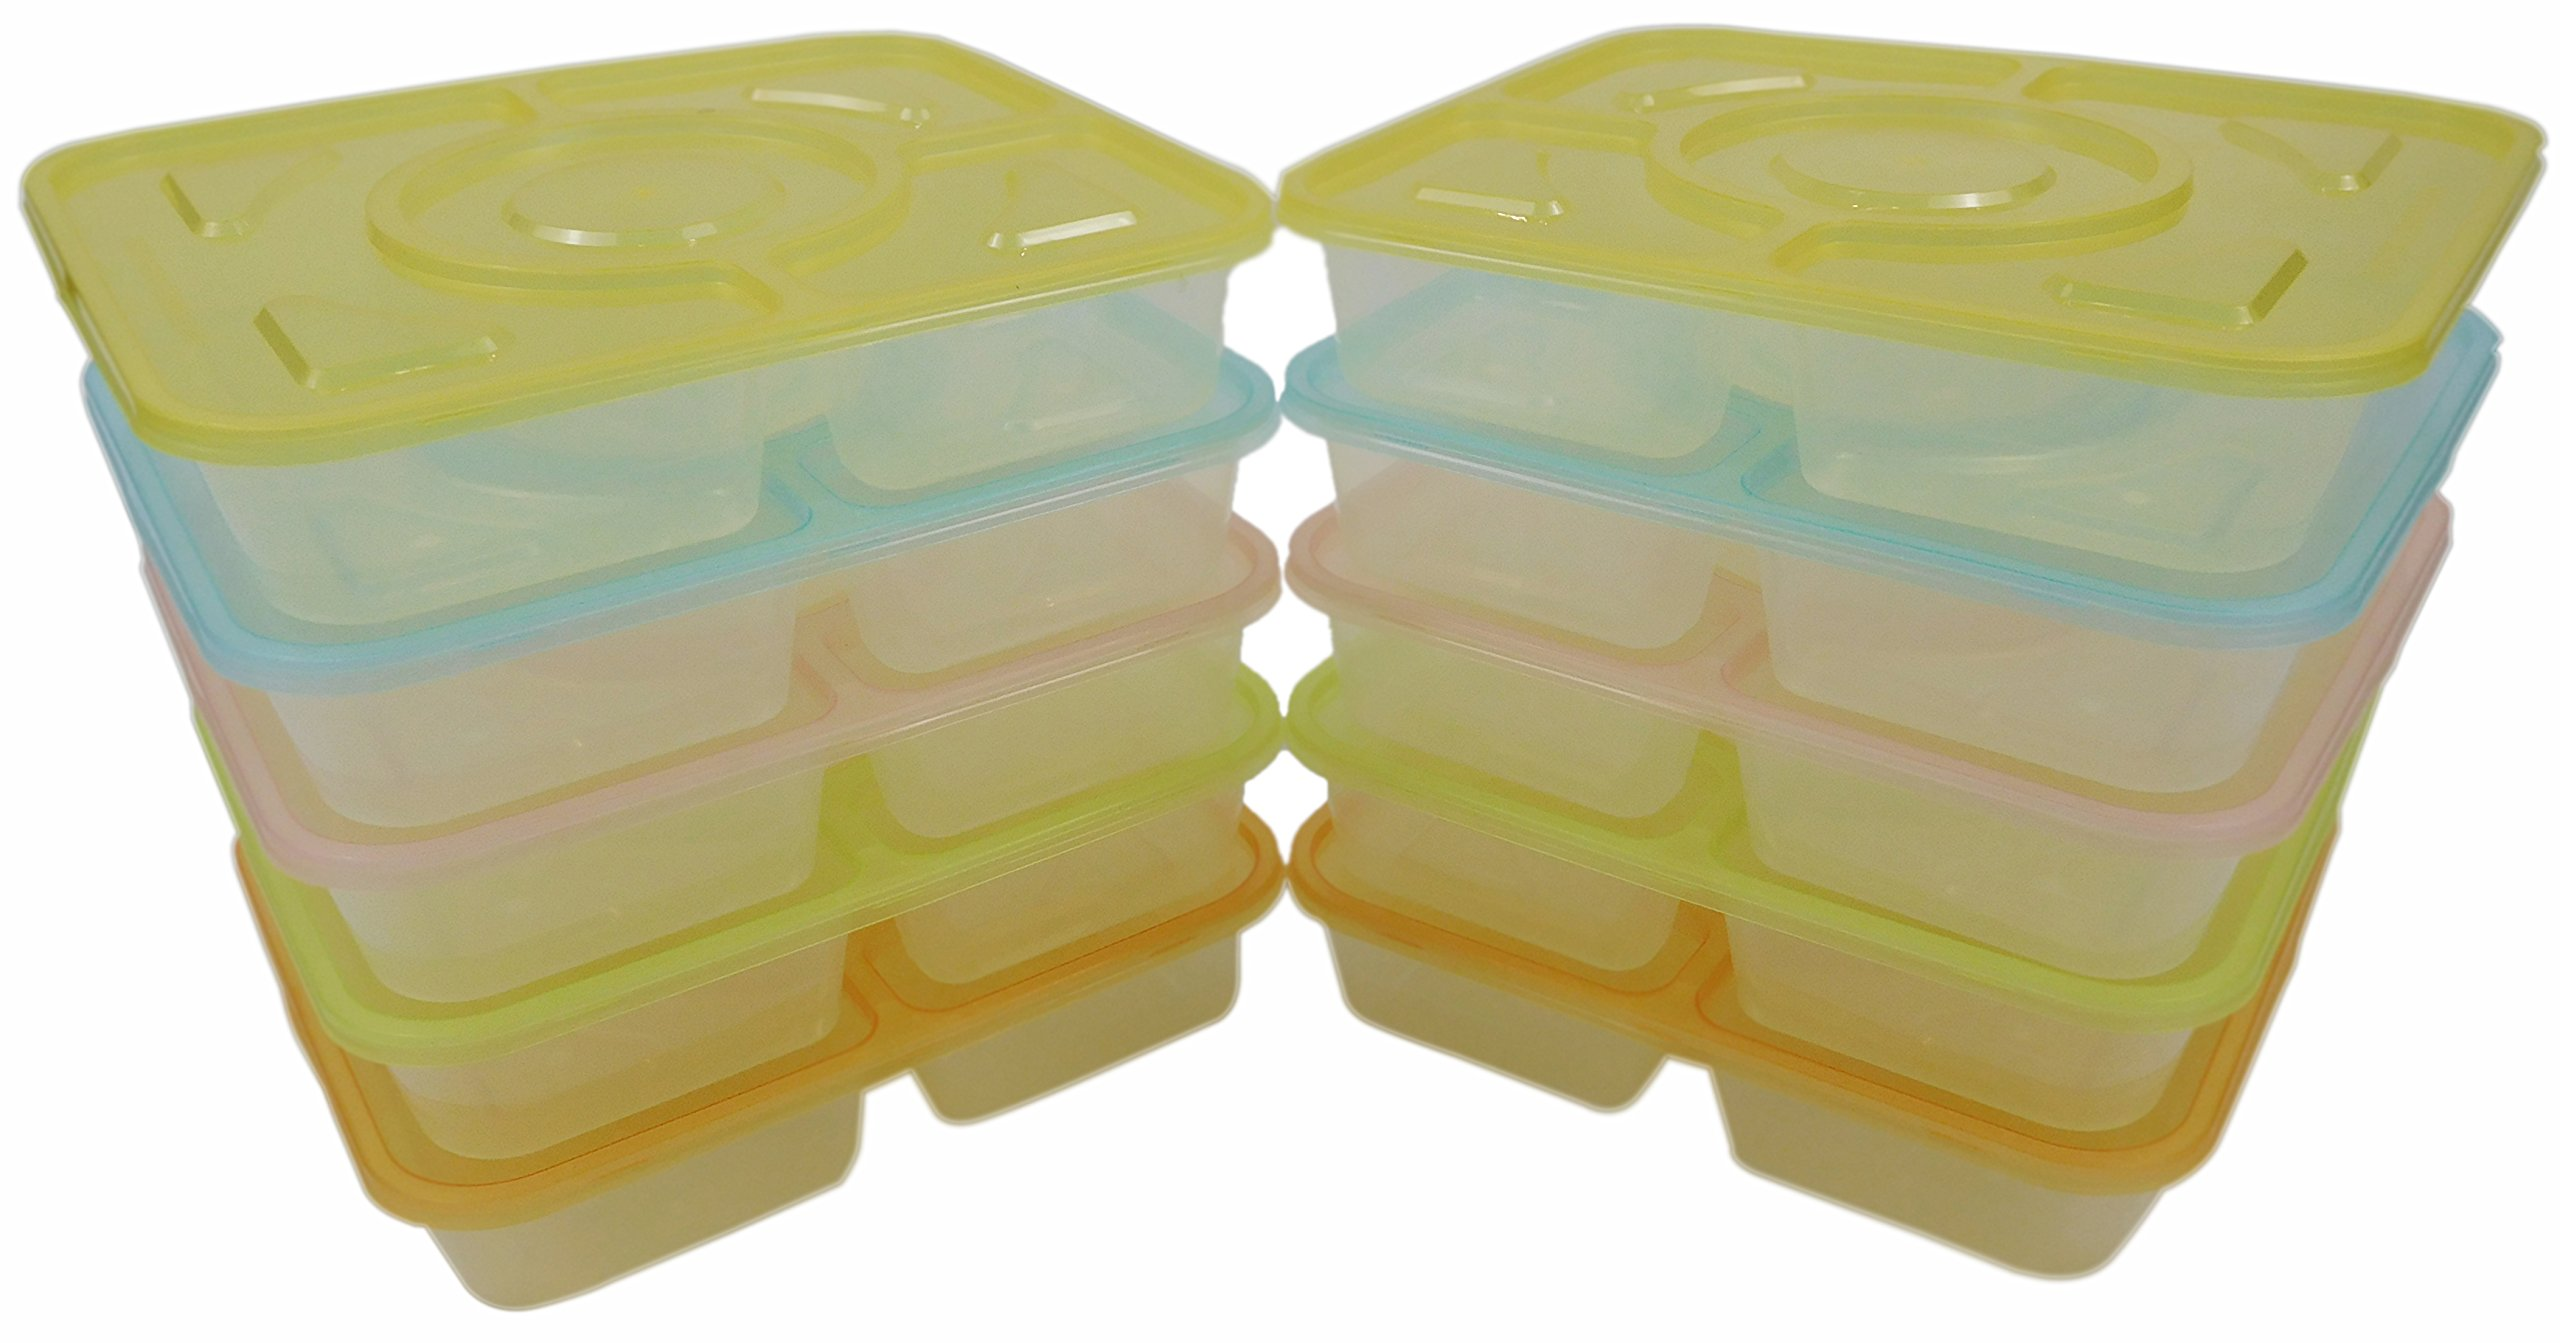 Table To Go 240-Pack Bento Lunch Boxes with Lids (4 Compartment/ 36 oz) (Multicolor Lids)